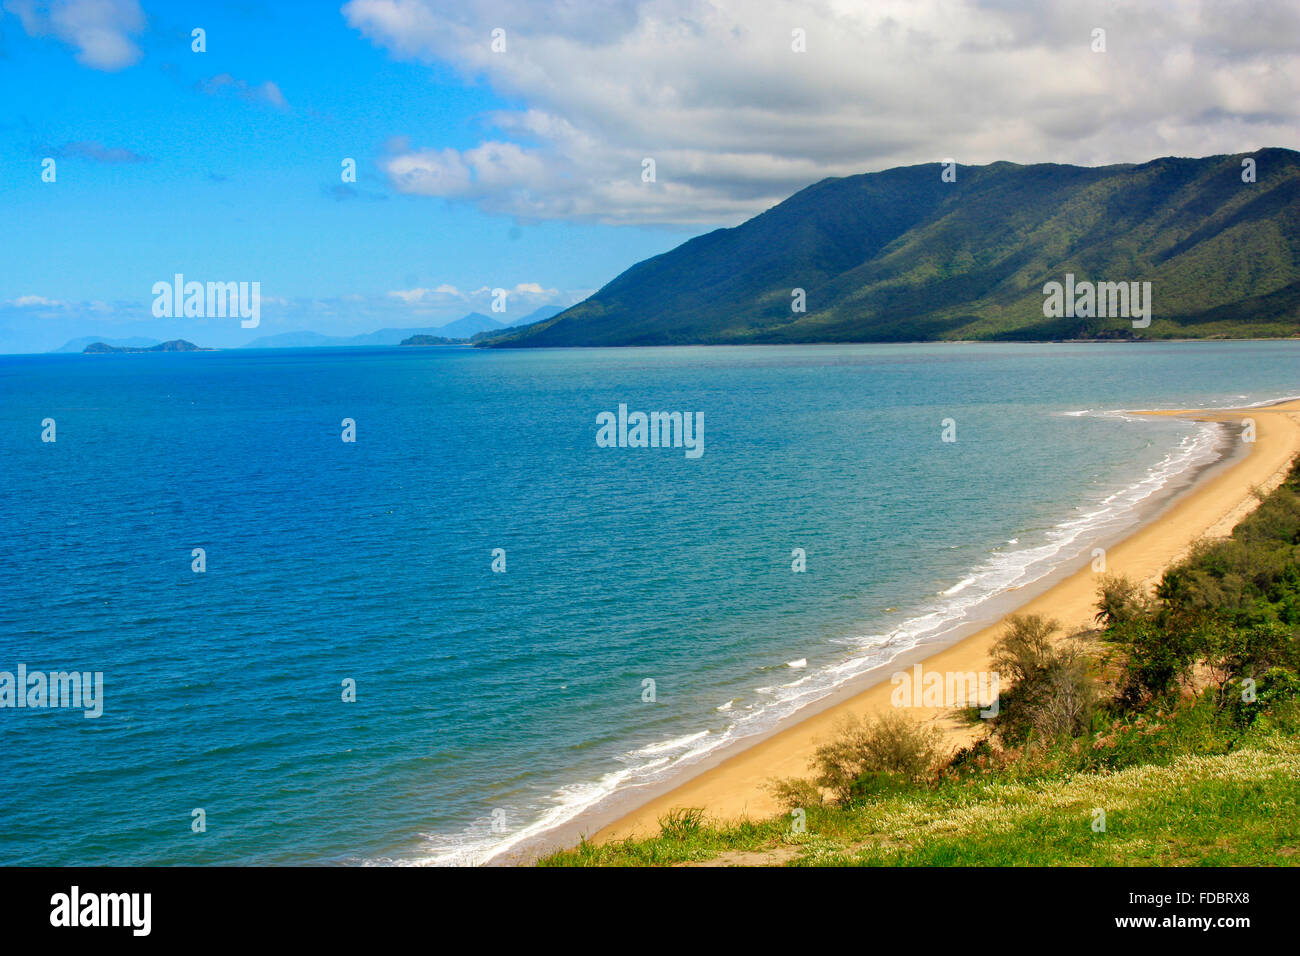 Rex lookout Port Douglas with a view of Double Island near Cairns Australia - Stock Image